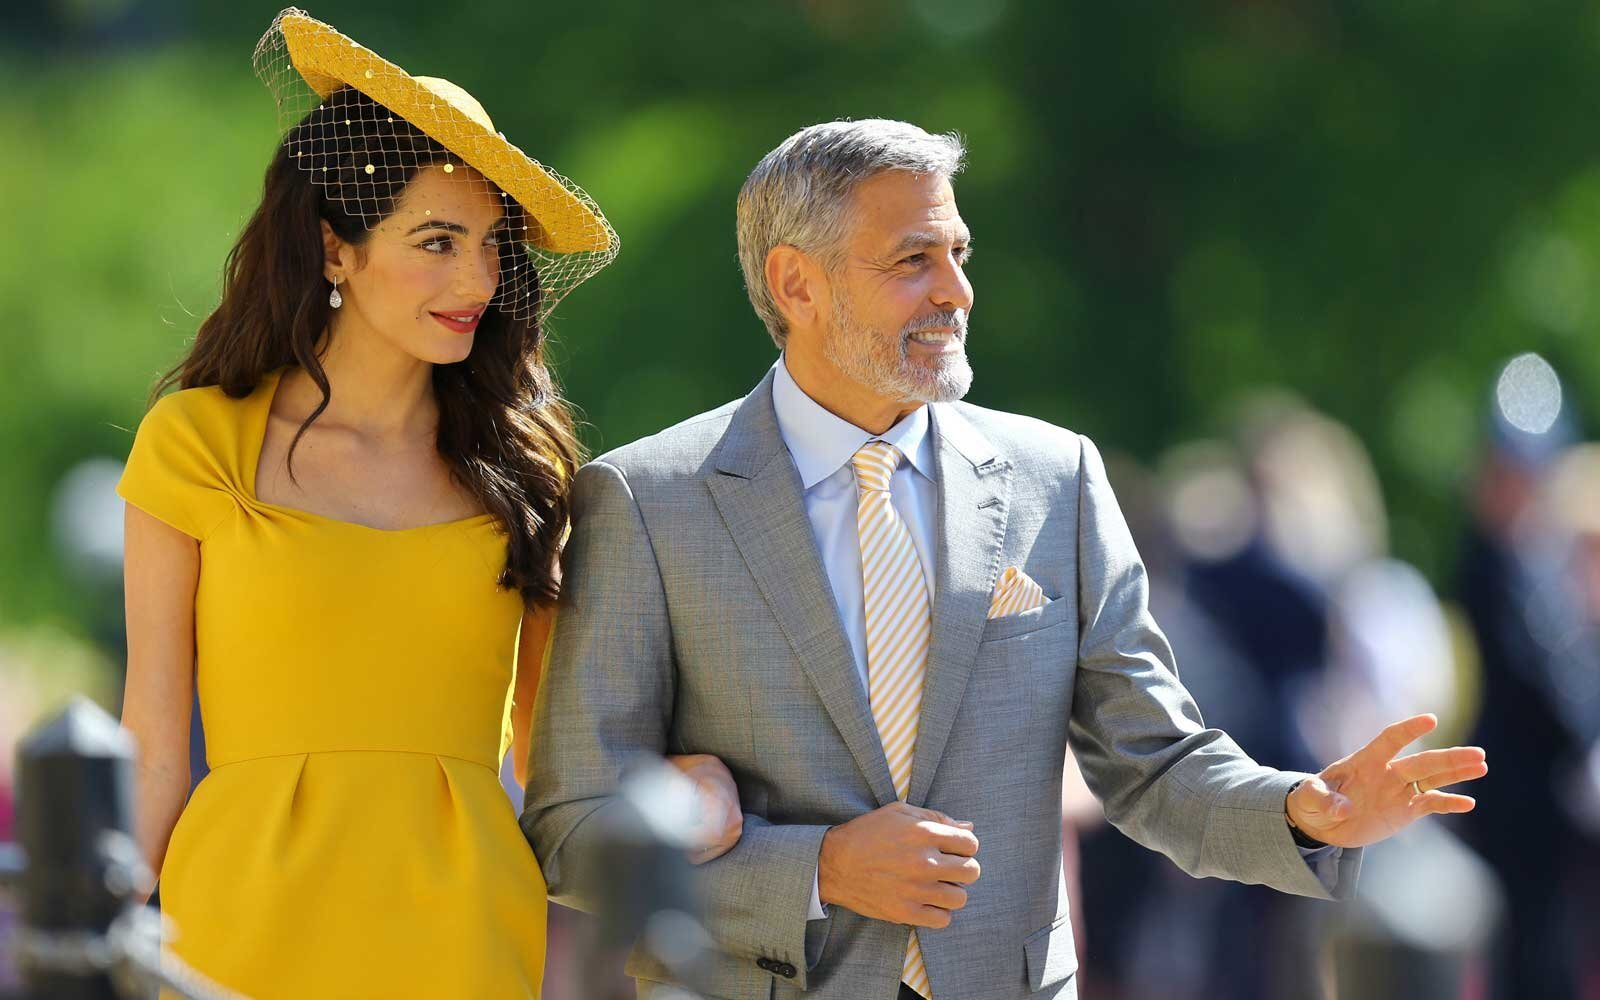 Prince Harry Wedding.See All The Celebrity Guests At Prince Harry And Meghan Markle S